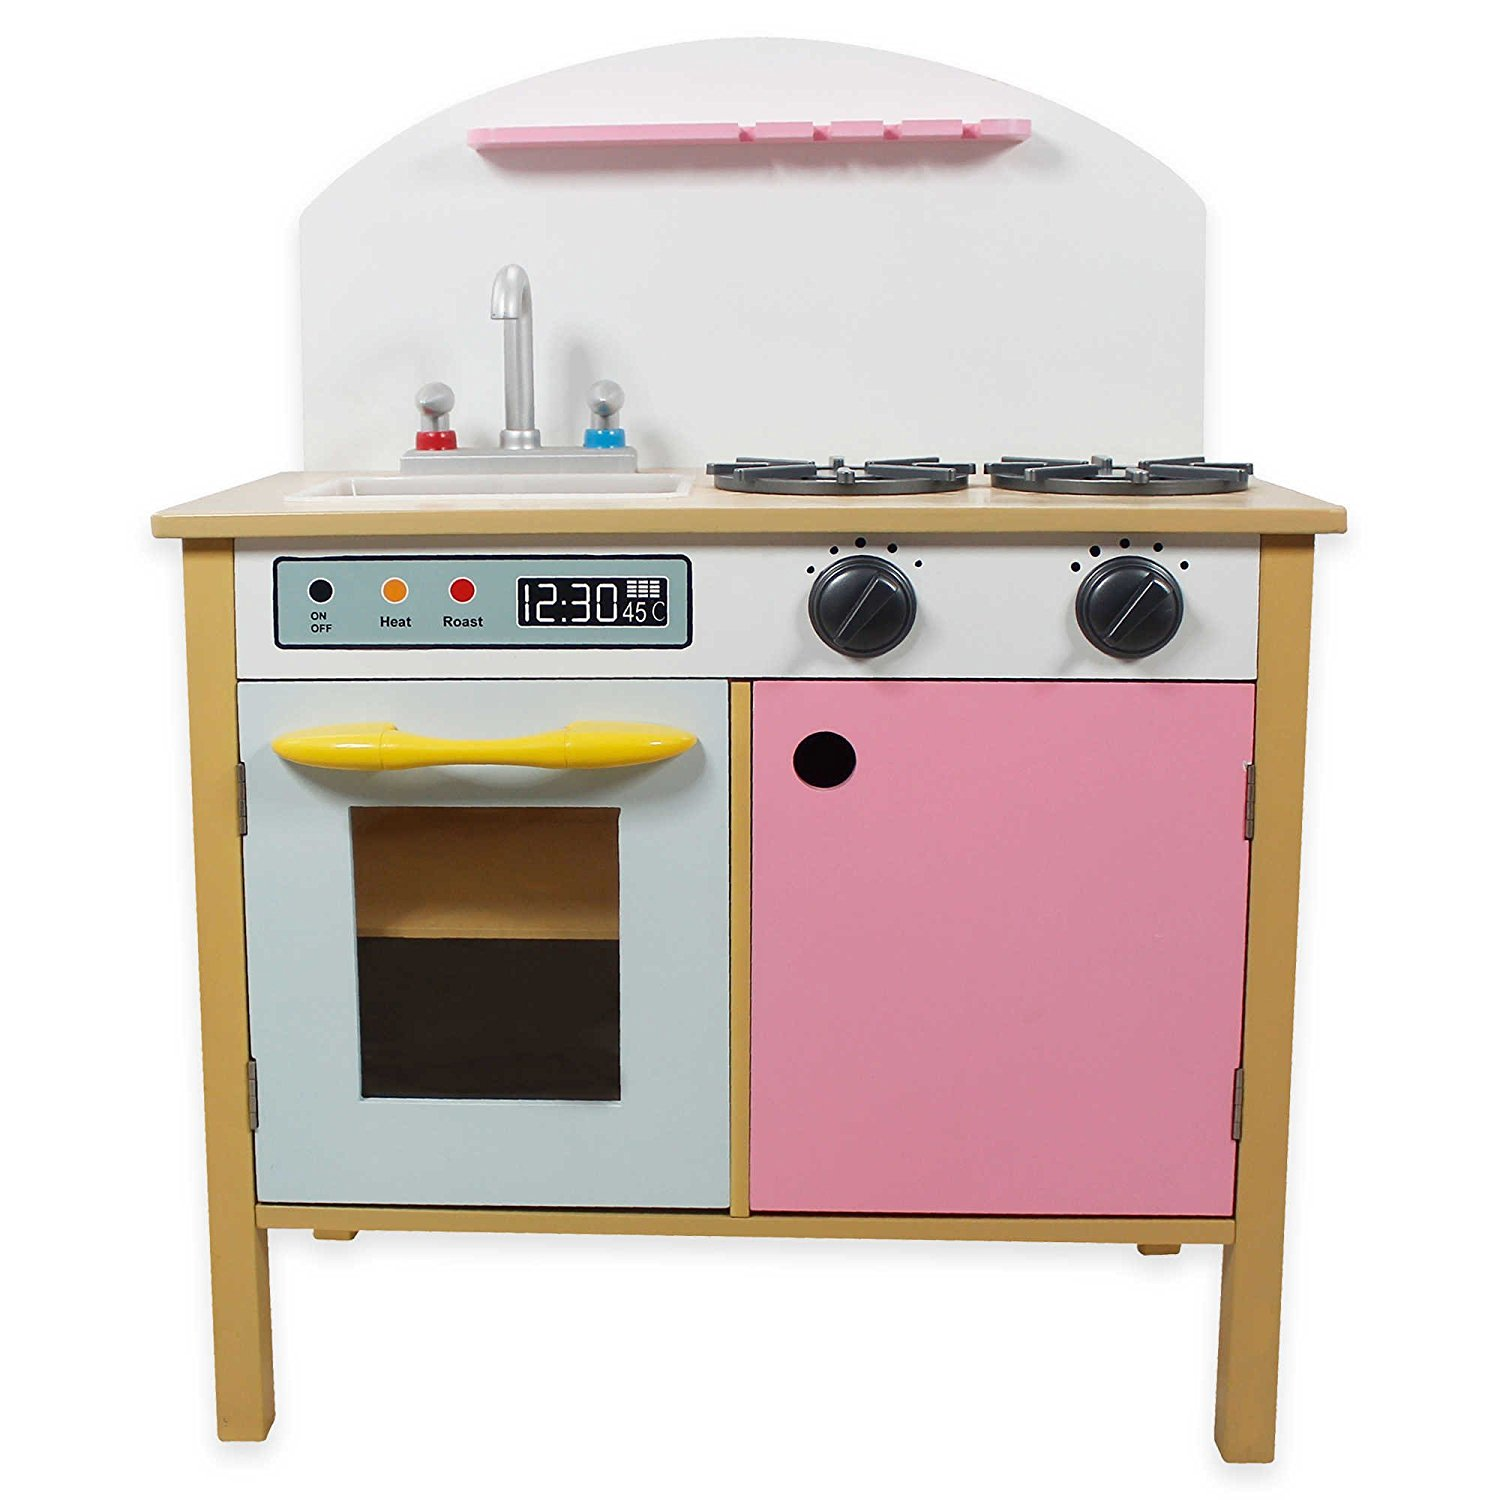 Teamson kids dual doors play kitchen set toy kids food cooking pink